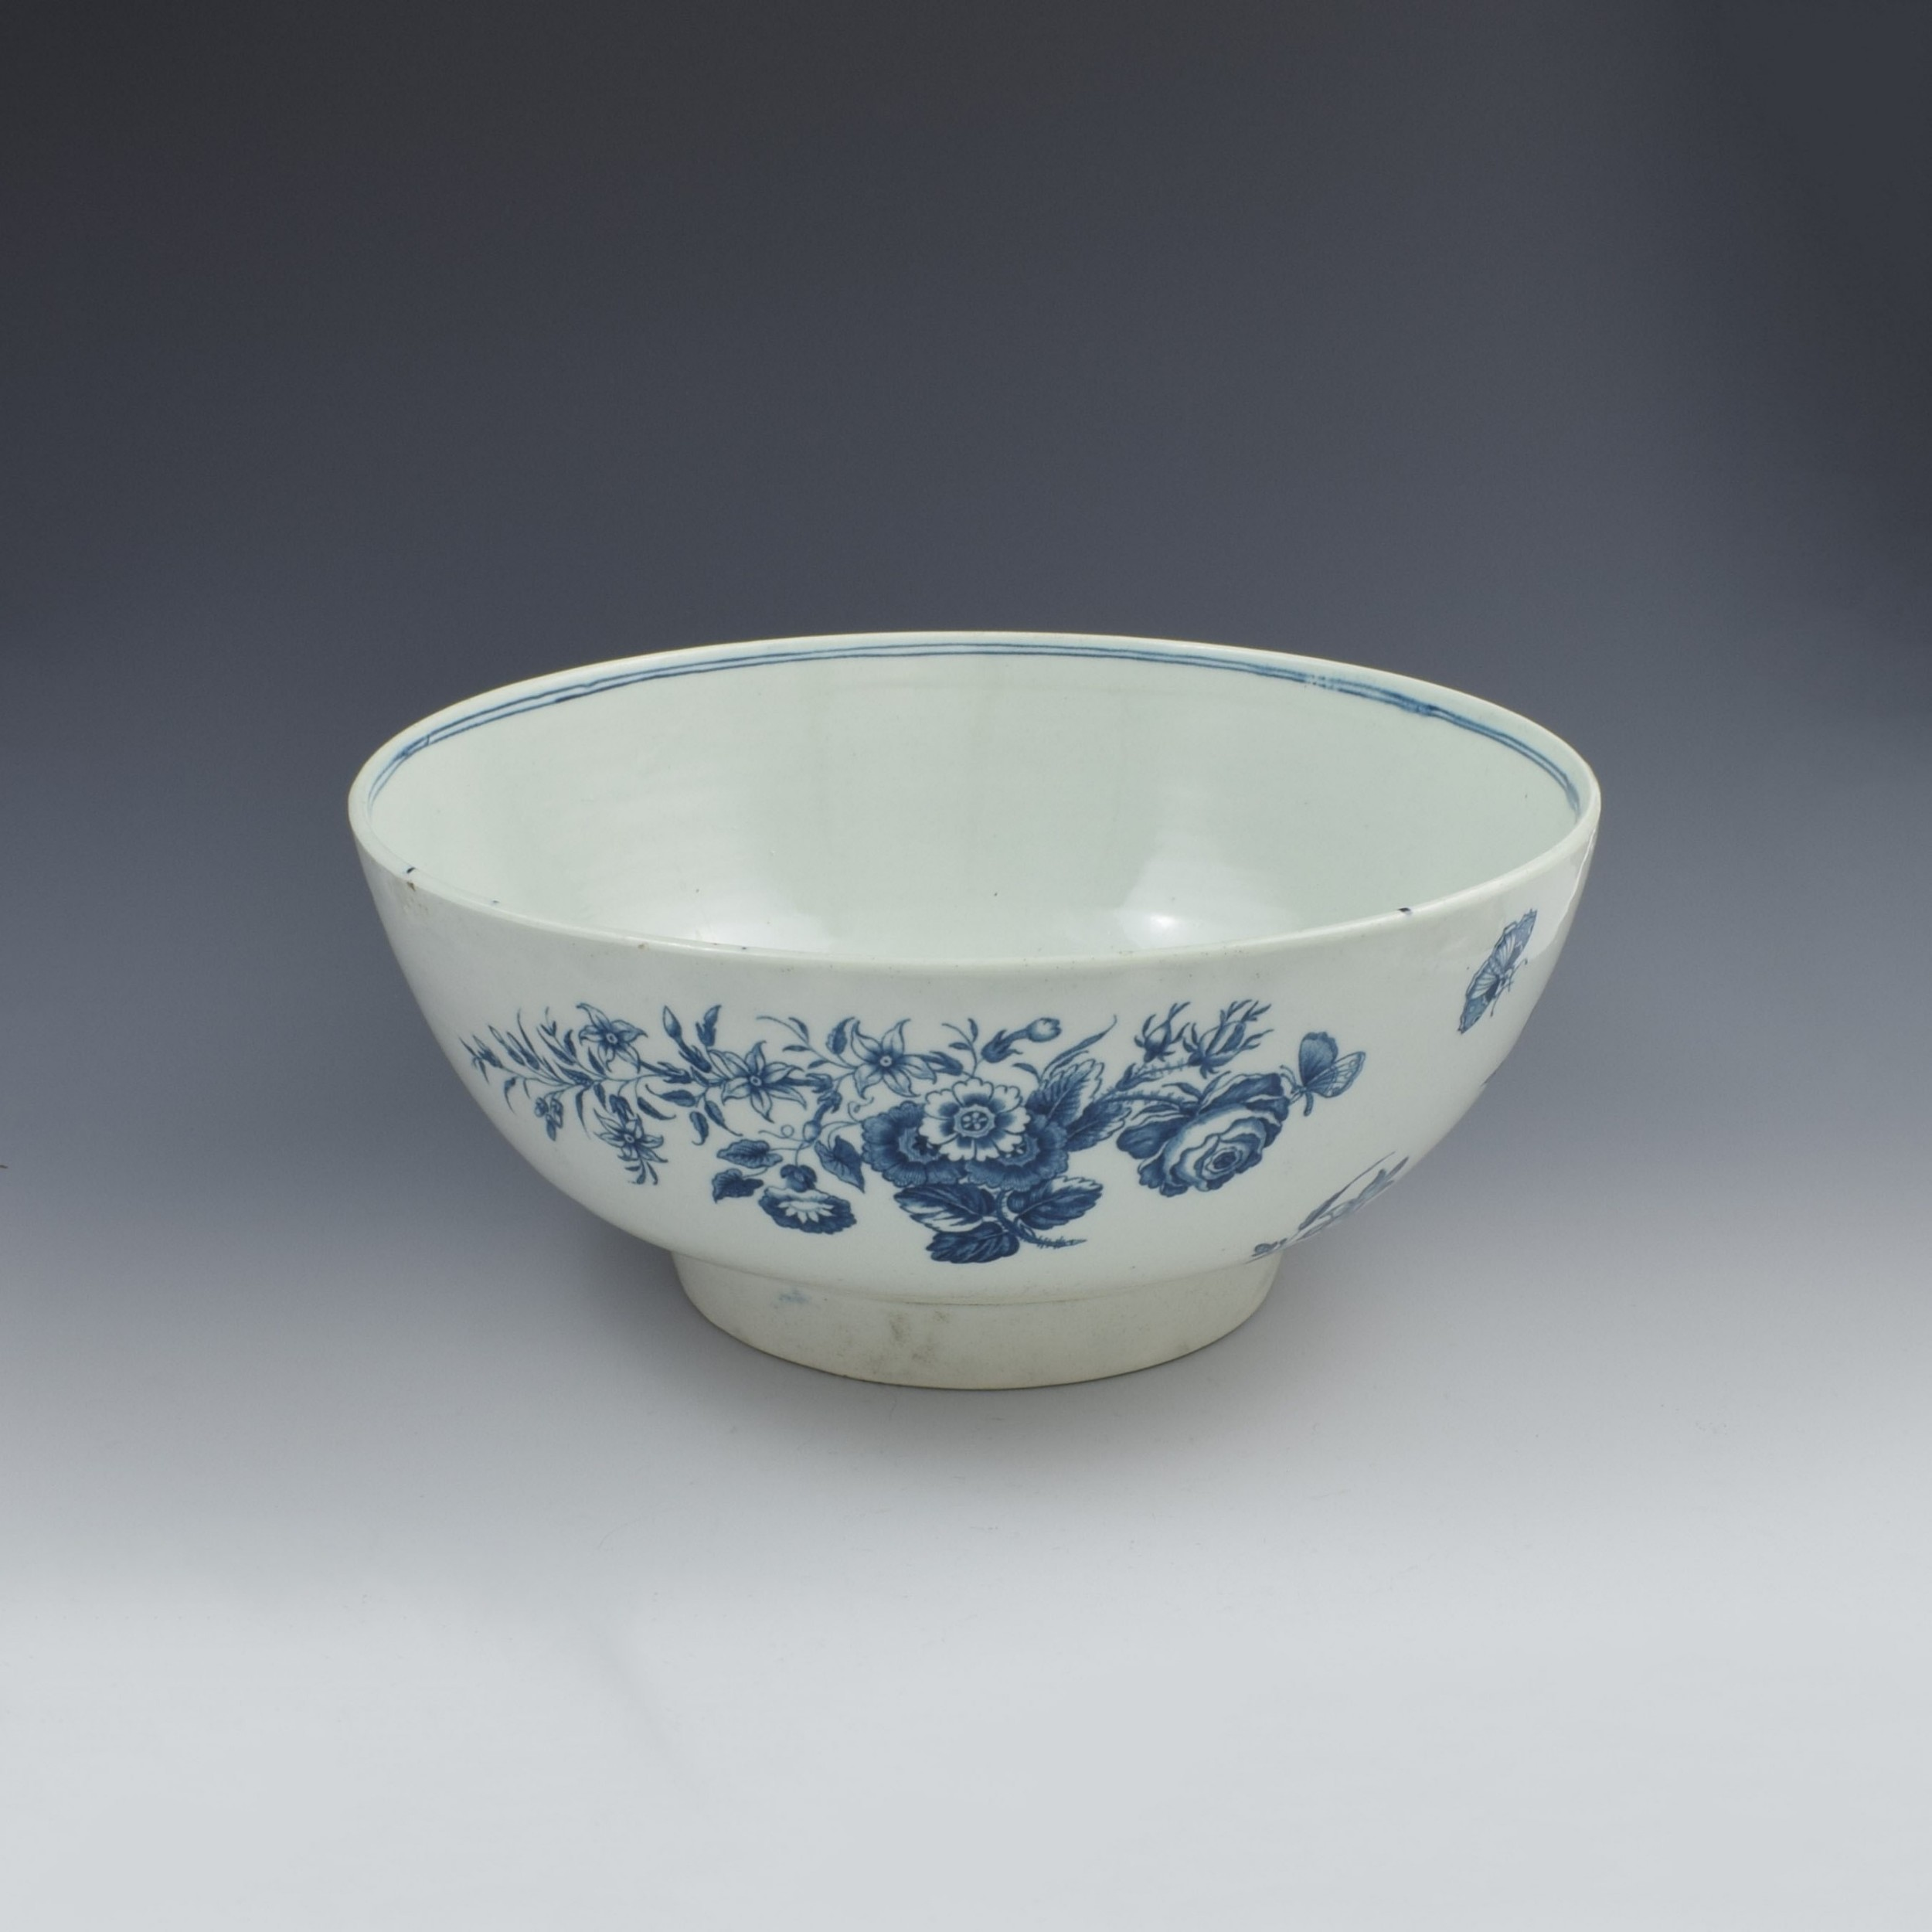 first period worcester large 11 porcelain punch bowl three flowers pattern c1770